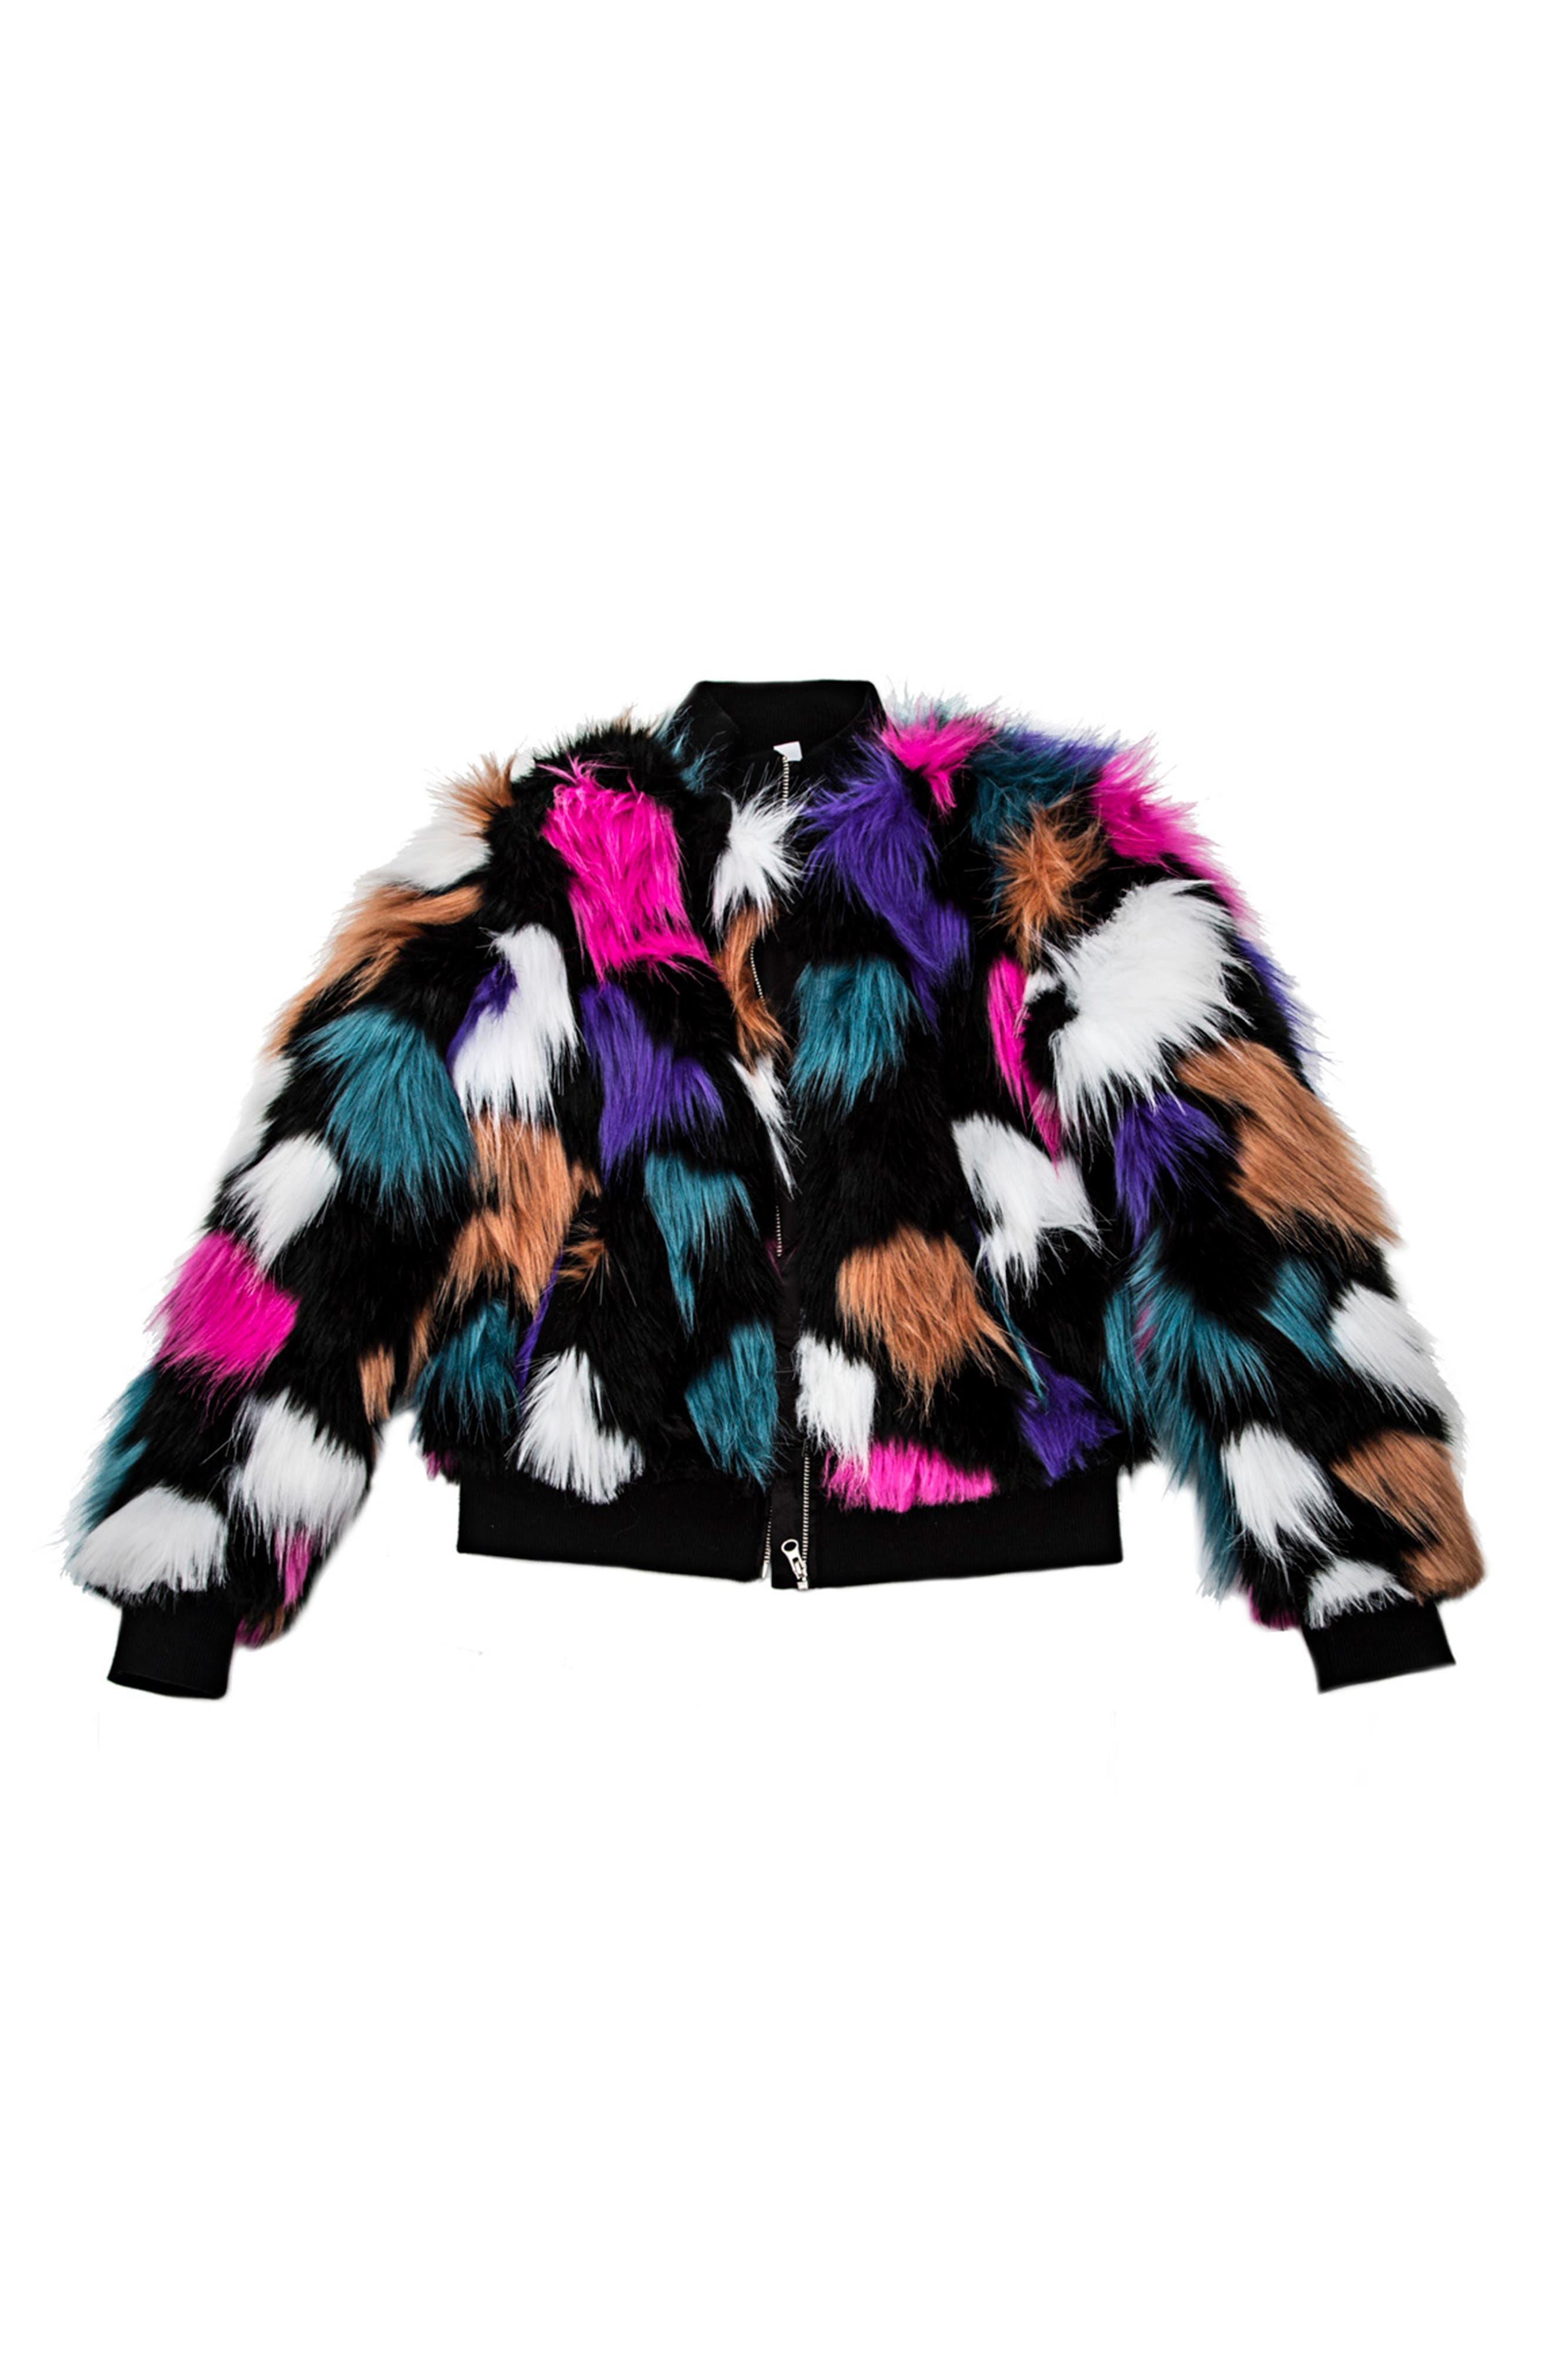 Alternate Image 1 Selected - Mia New York Faux Fur Jacket (Big Girls)